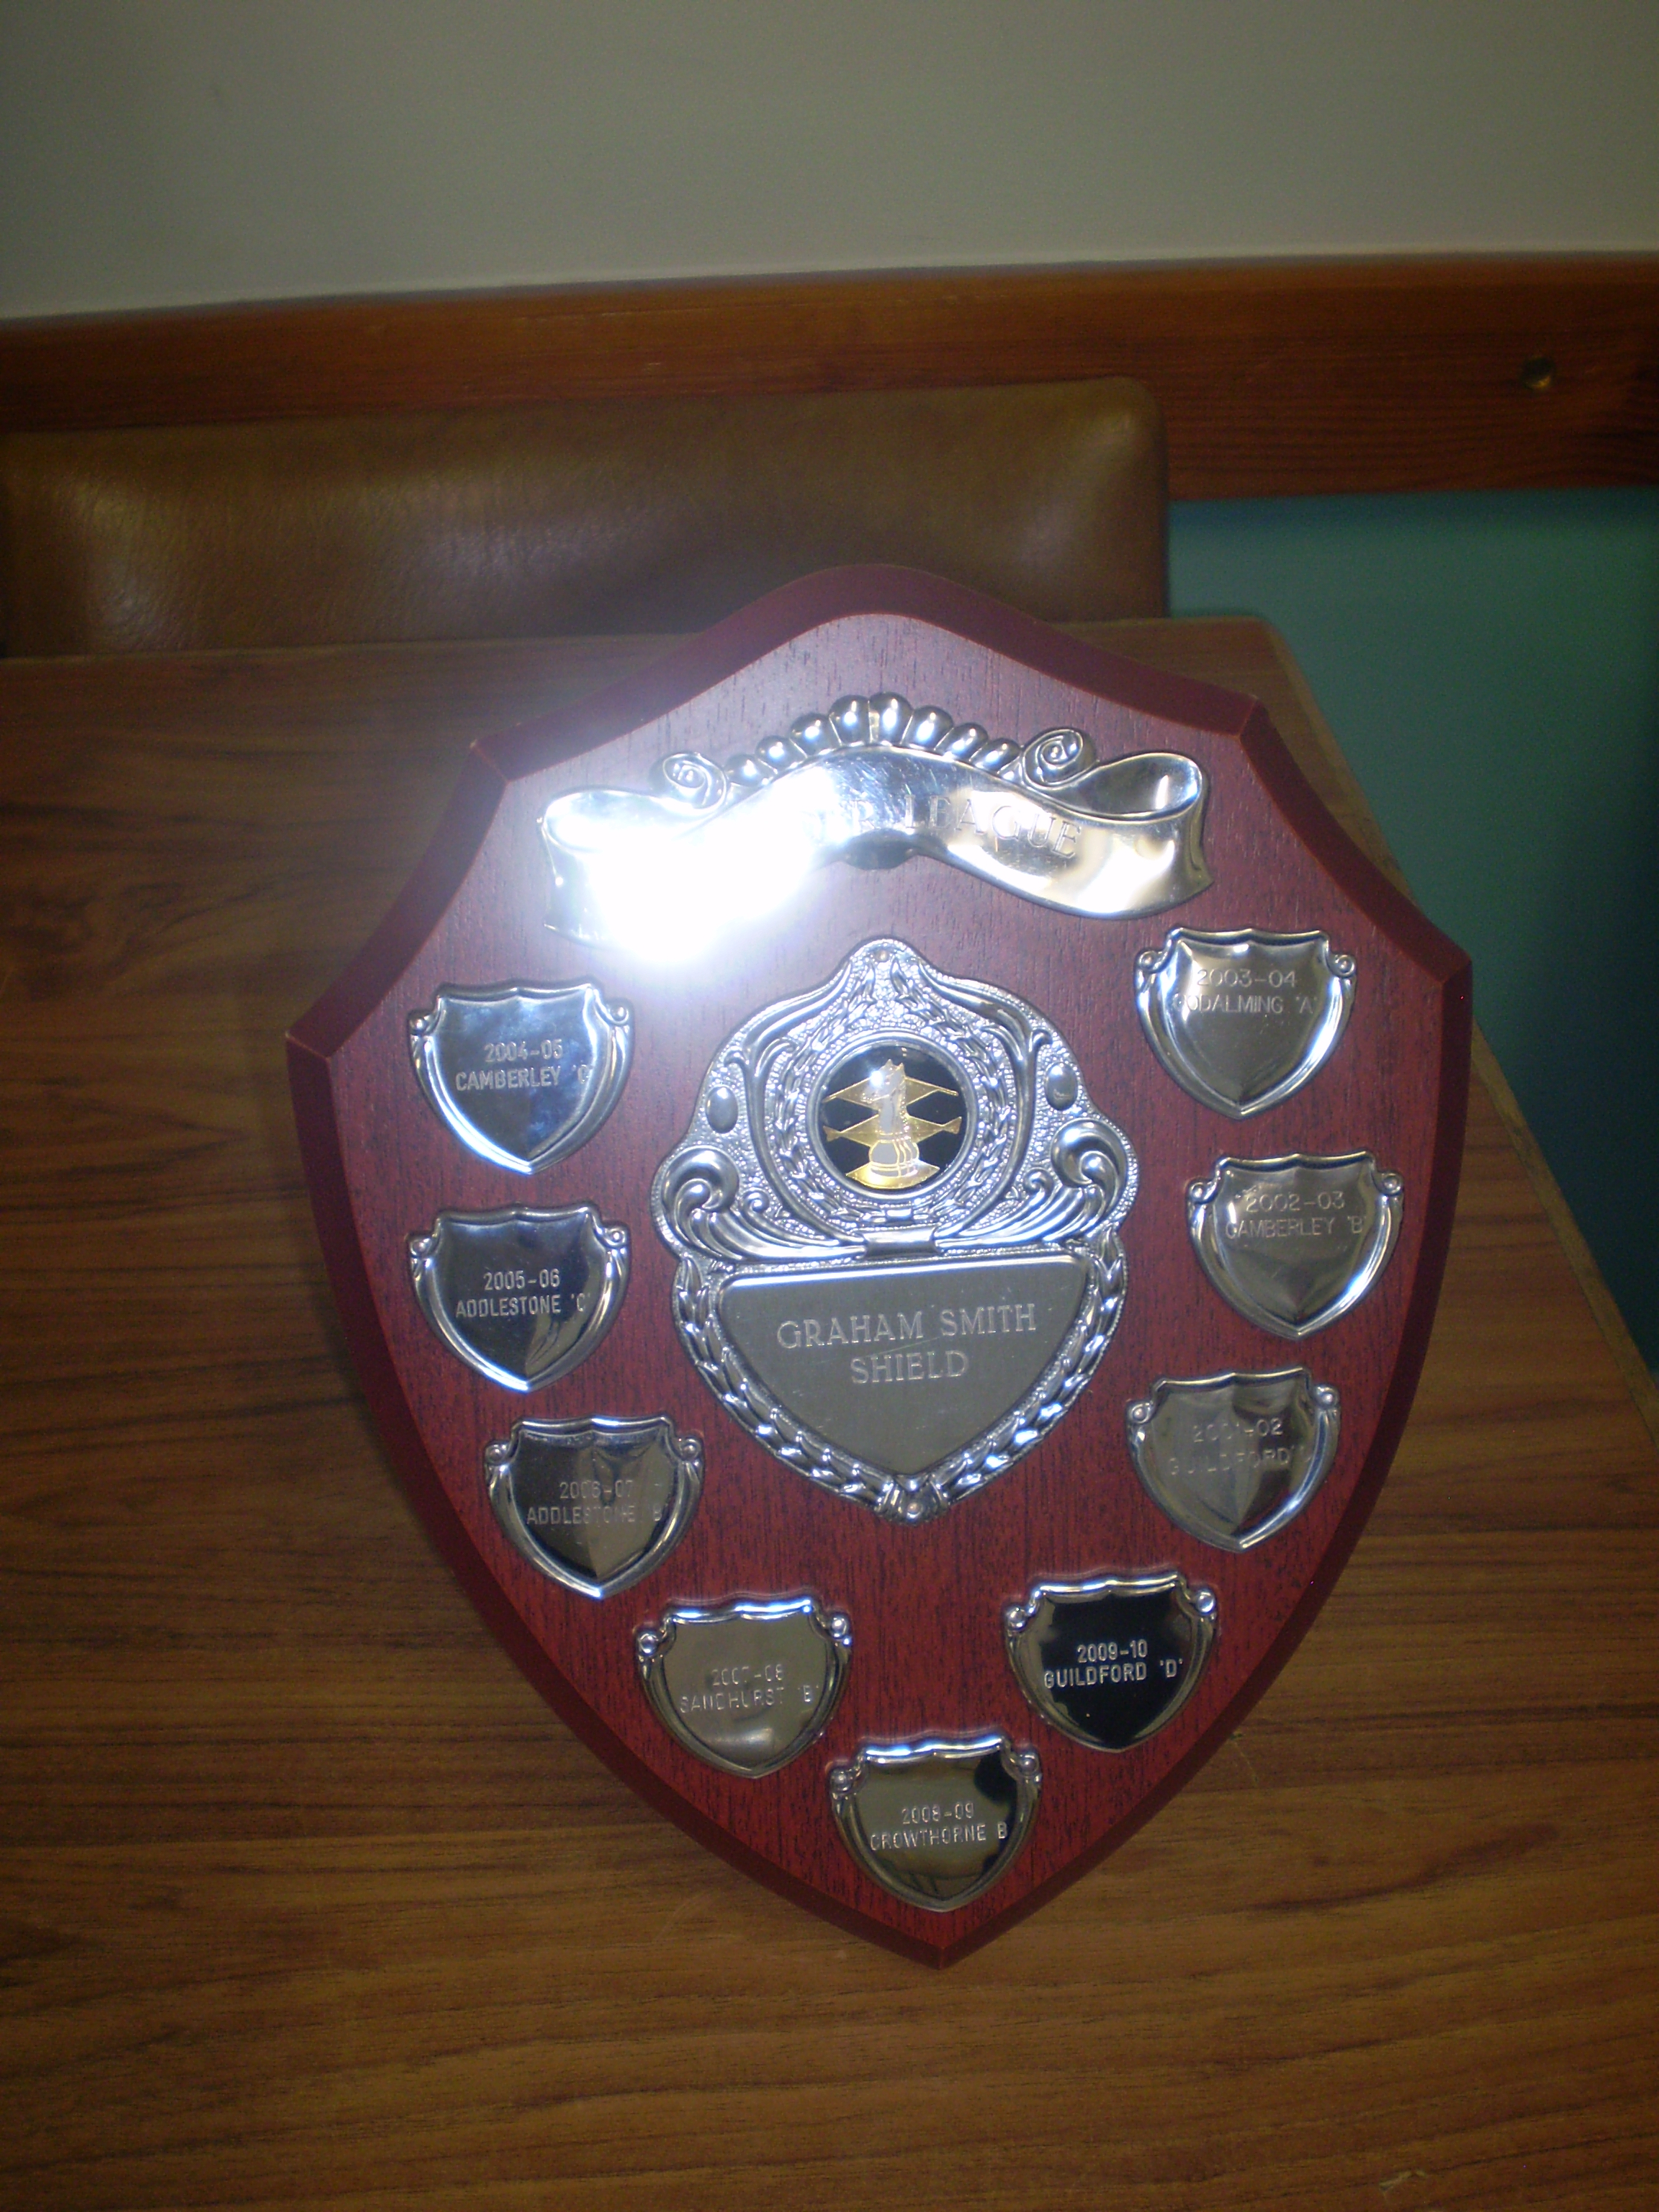 Graham Smith Shield